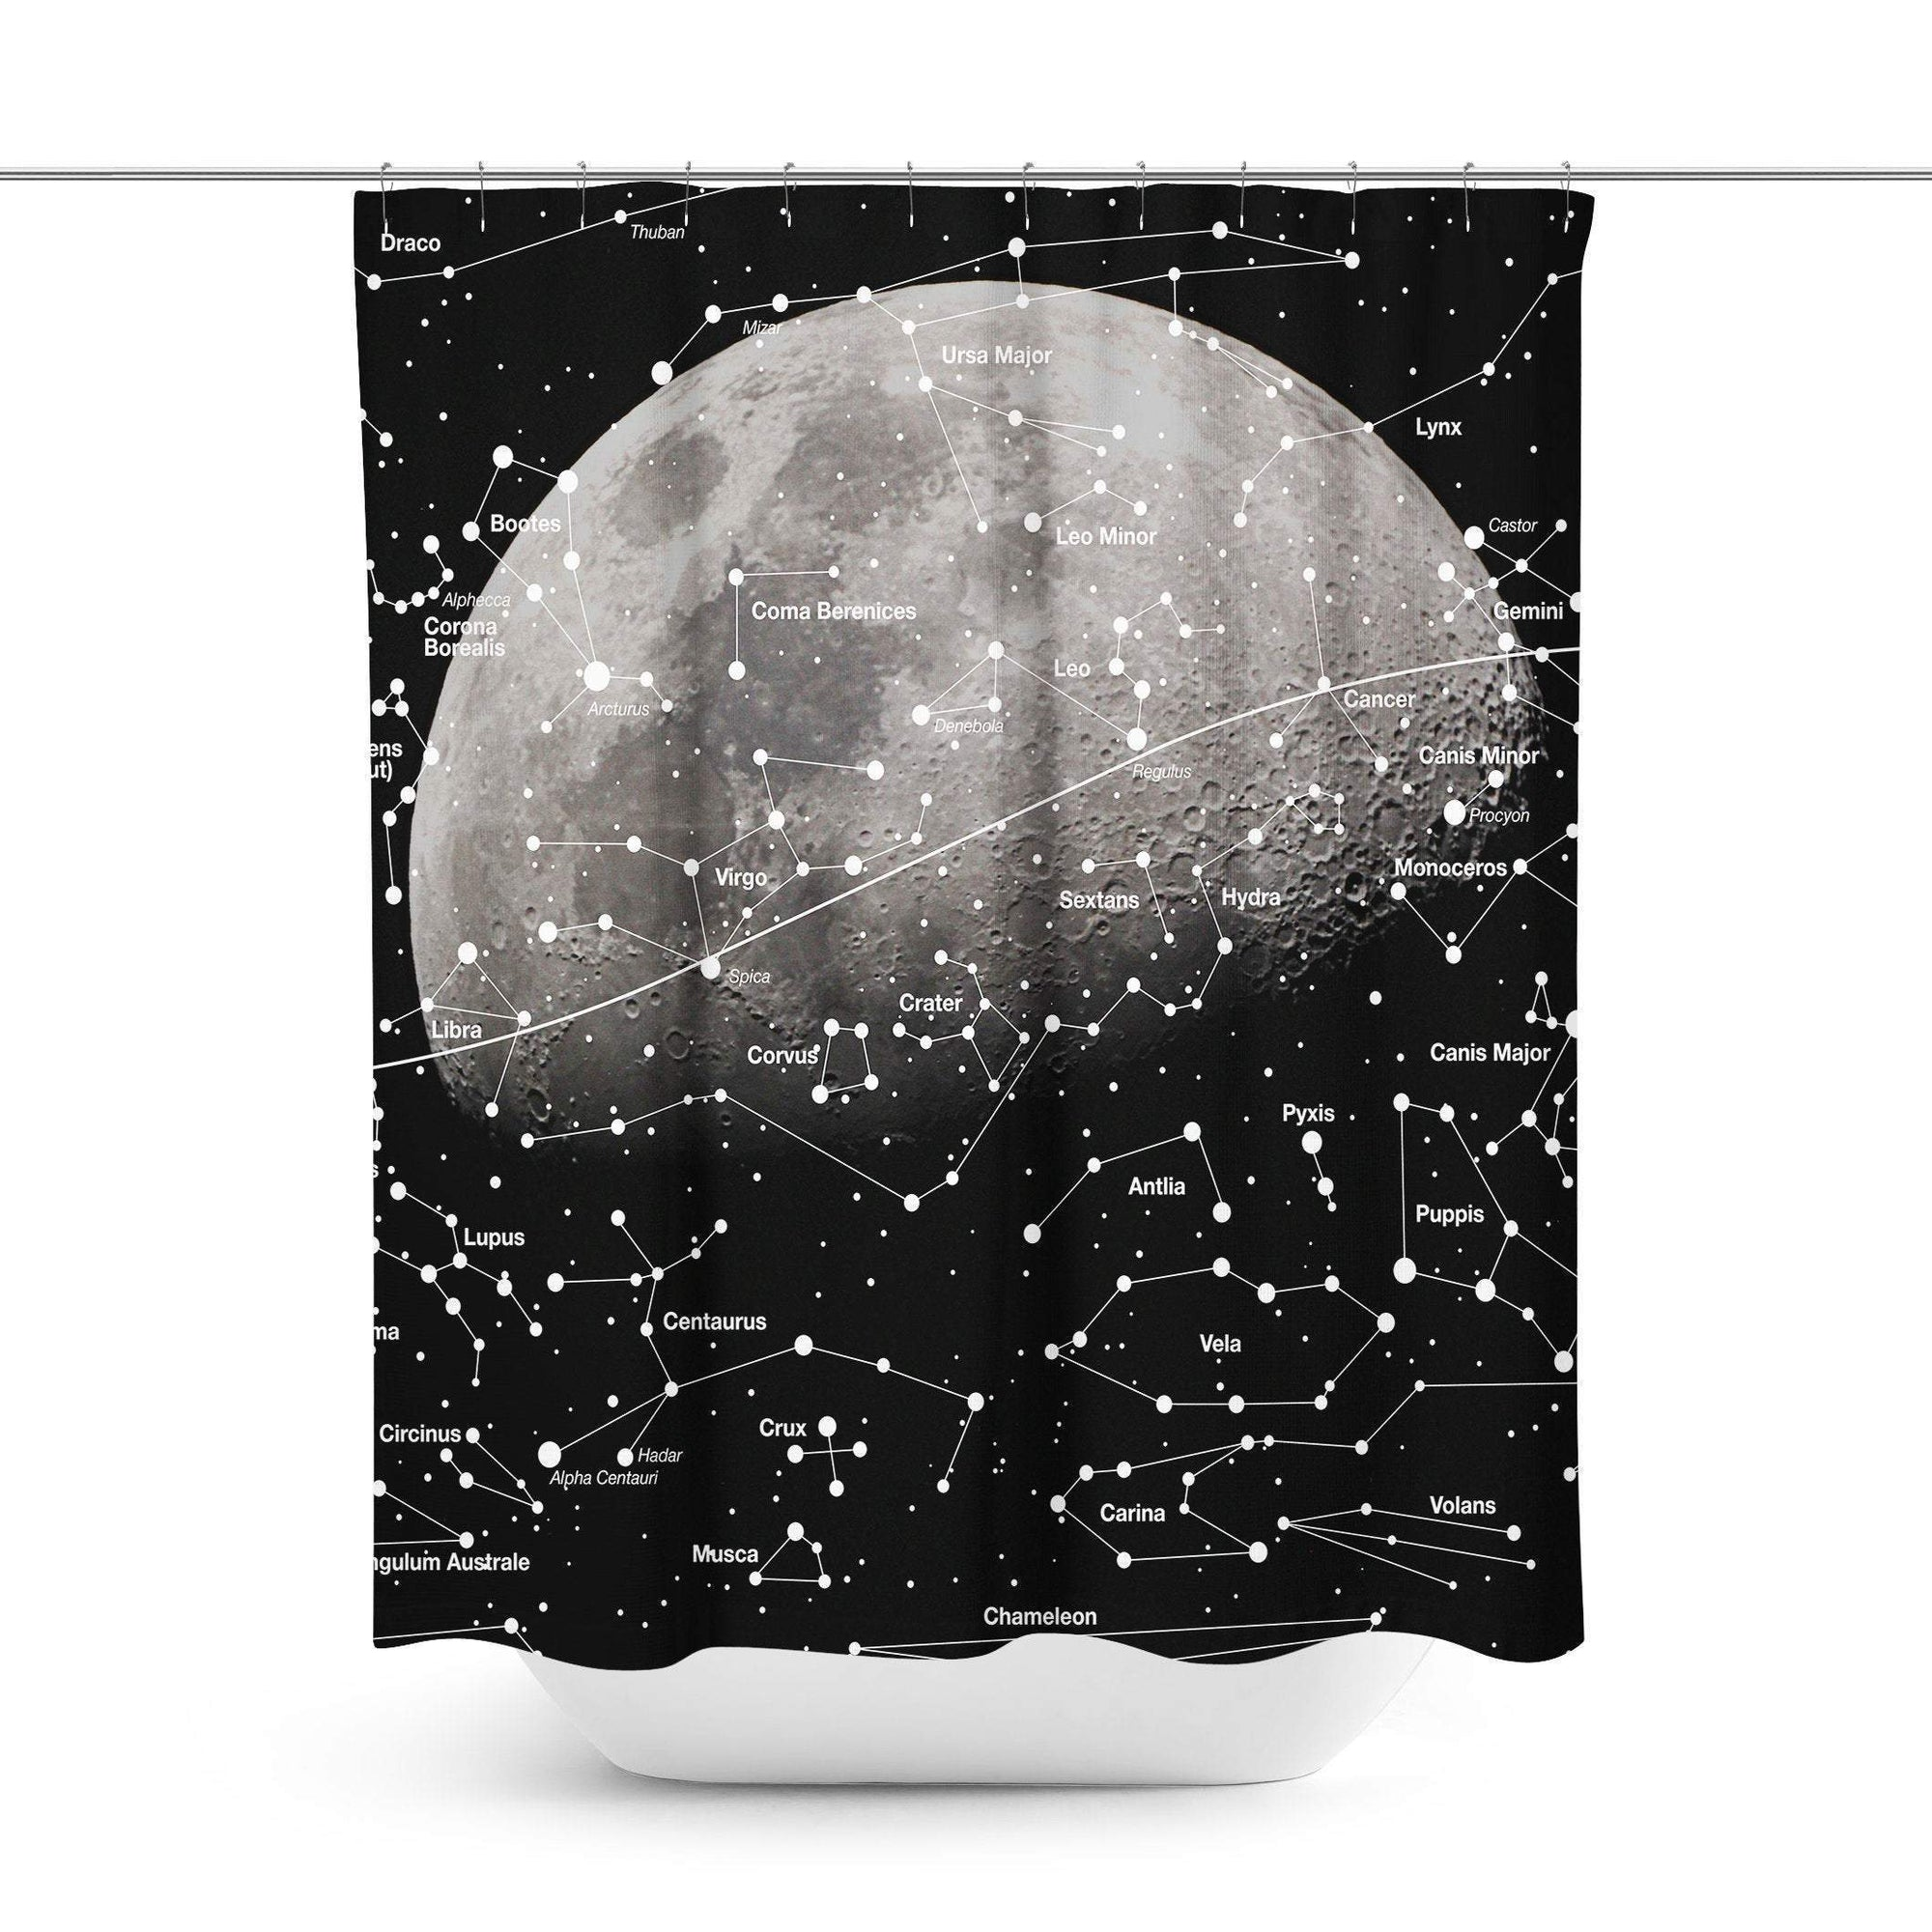 Moon Shower Curtain - Shower Curtains - W.FRANCIS